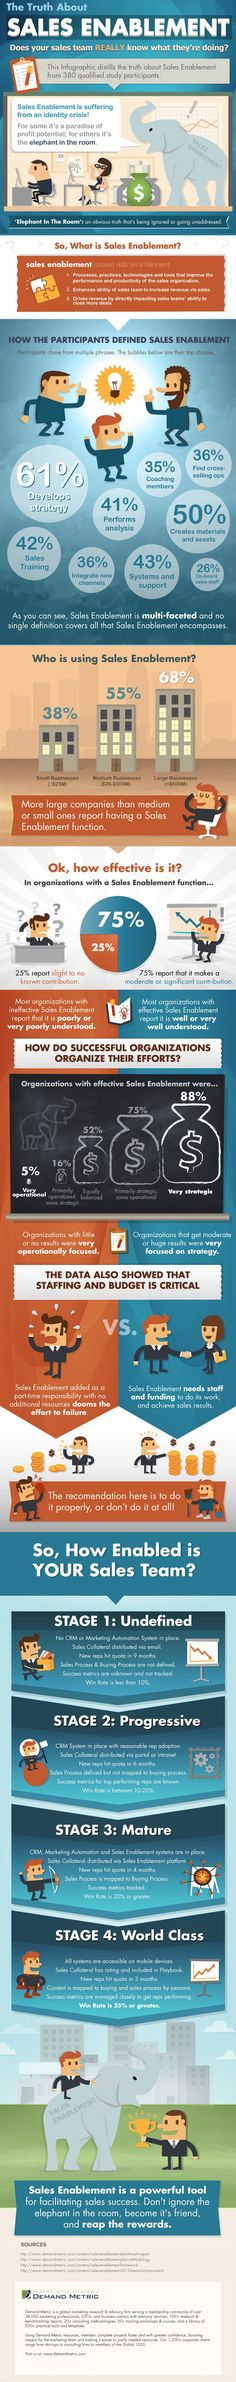 The truth about sales enablement (infographic for - Heinz Marketing Sales And Marketing, Marketing Digital, Business Marketing, Business Tips, Online Marketing, Online Business, Sales Techniques, Sales Strategy, Business Management